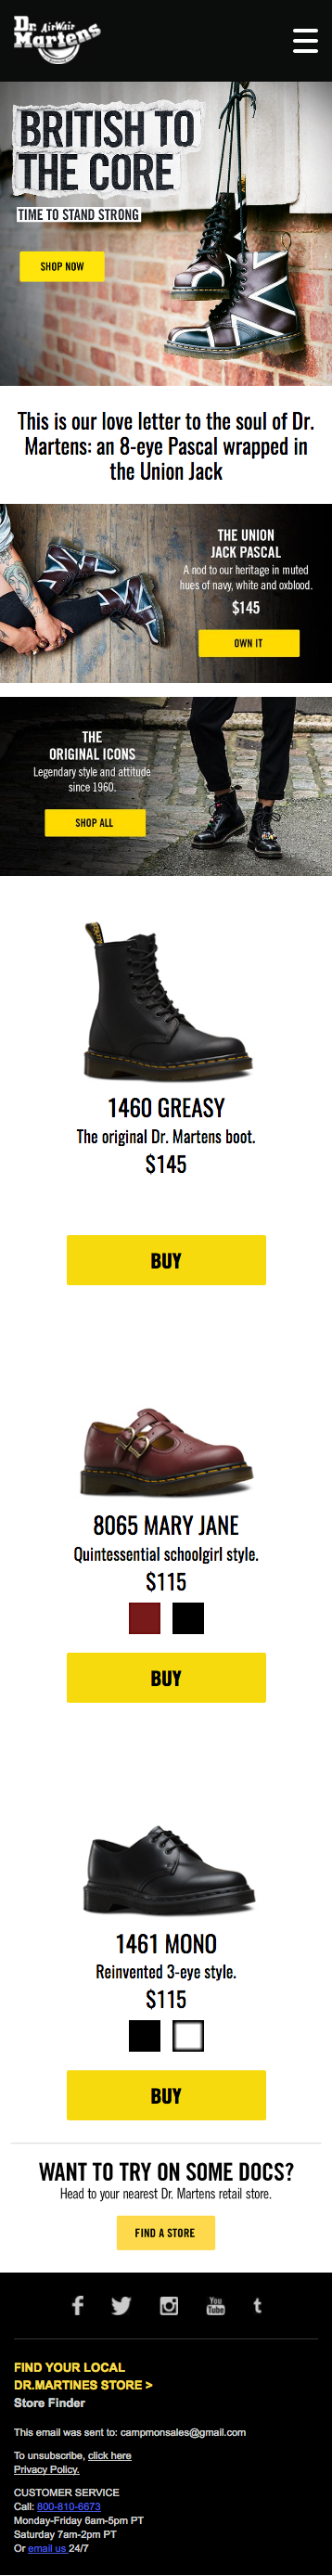 Dr Martens: Hamburger menu